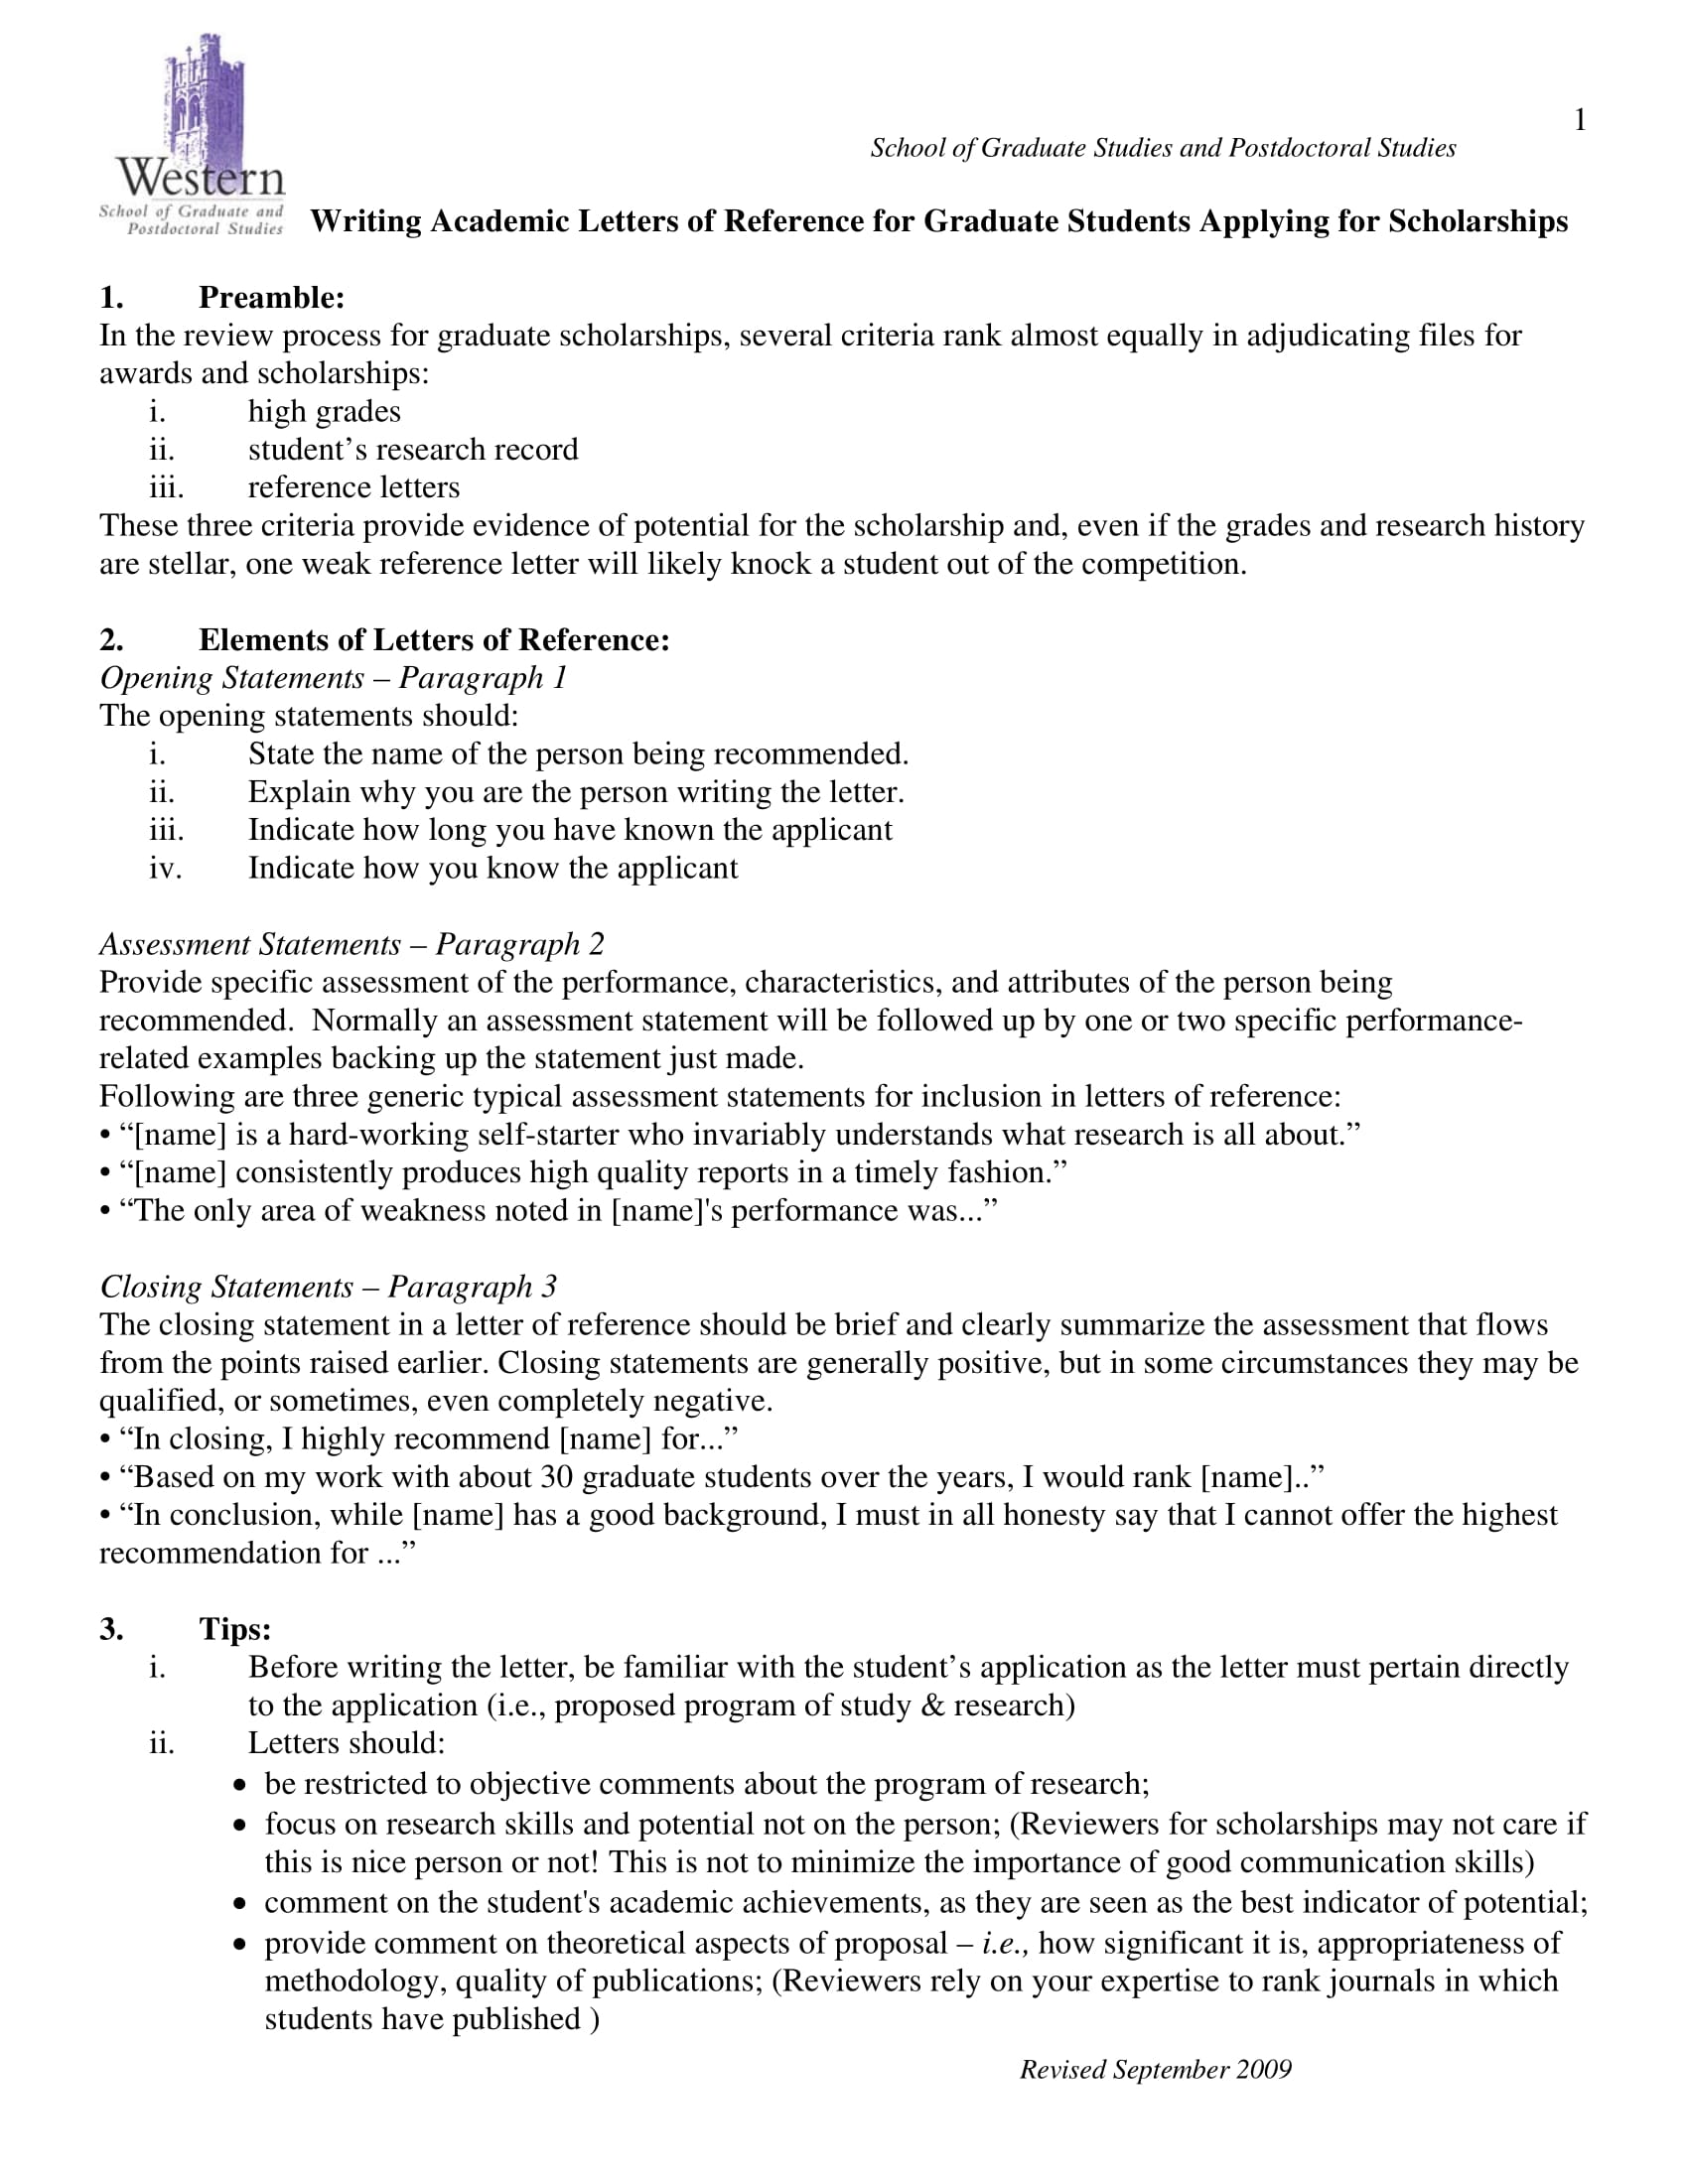 academic reference letter for graduate students scholarship